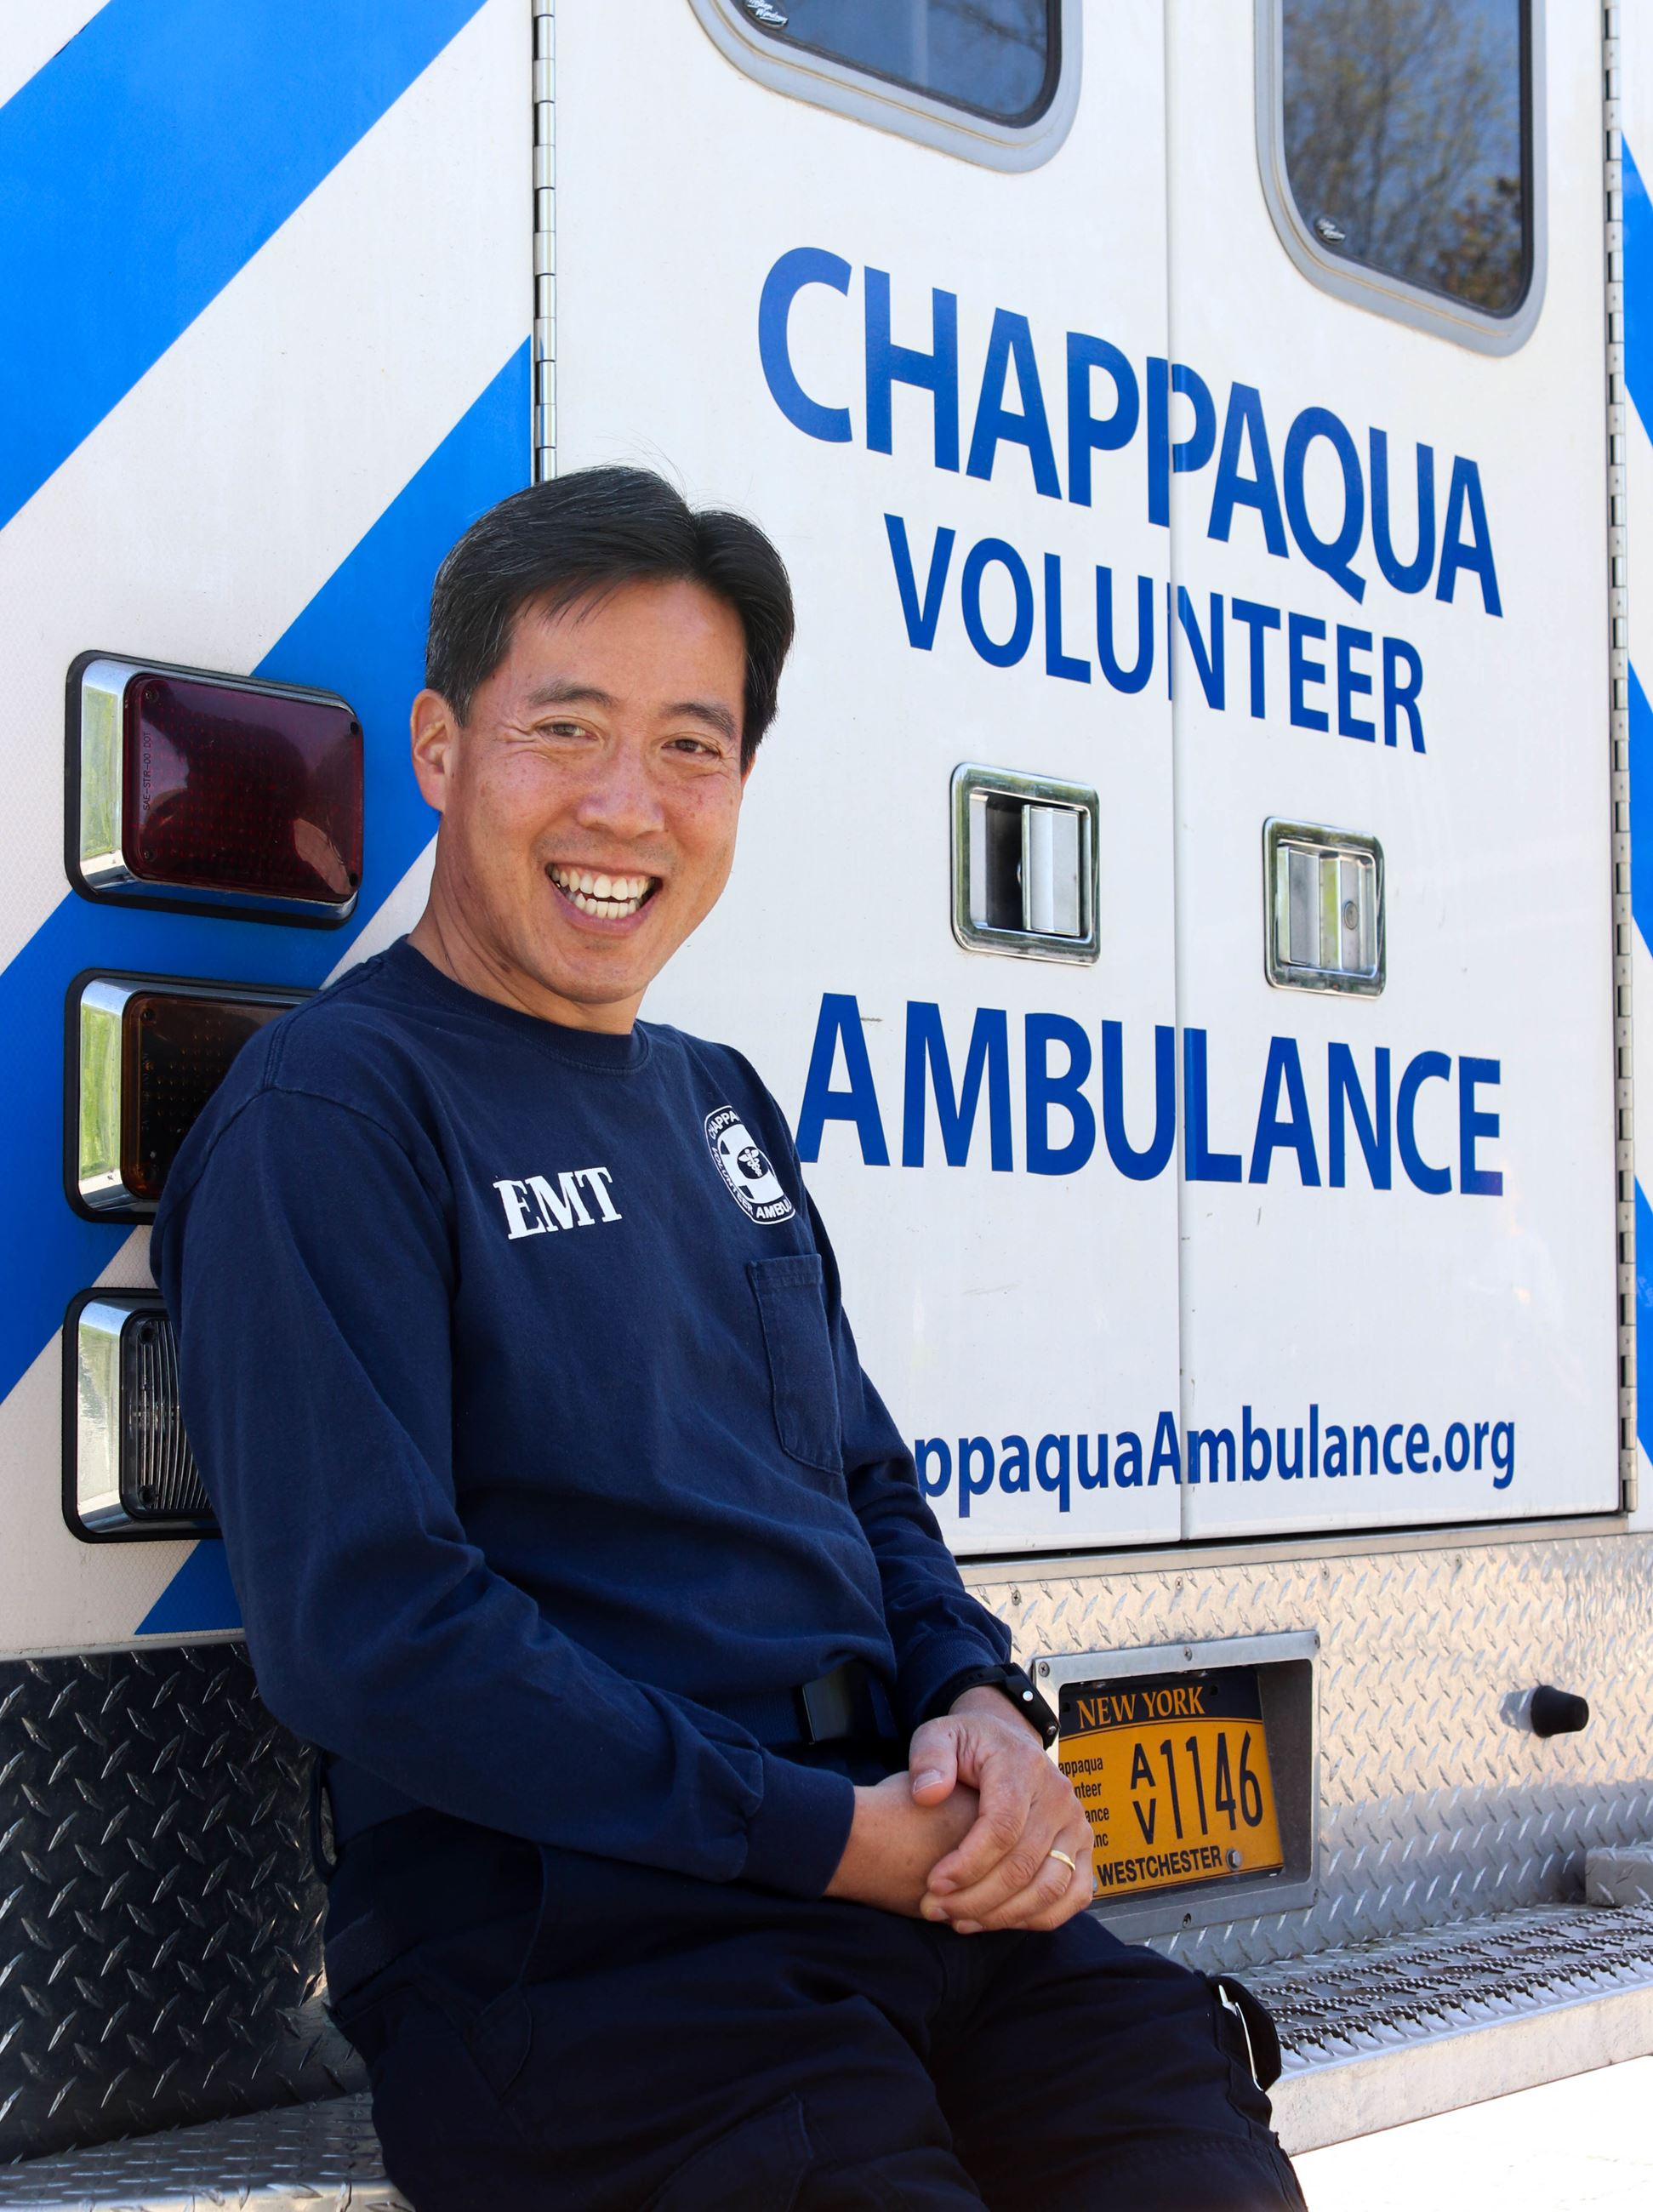 Chappaqua Volunteer Ambulance Member in front of Ambulance